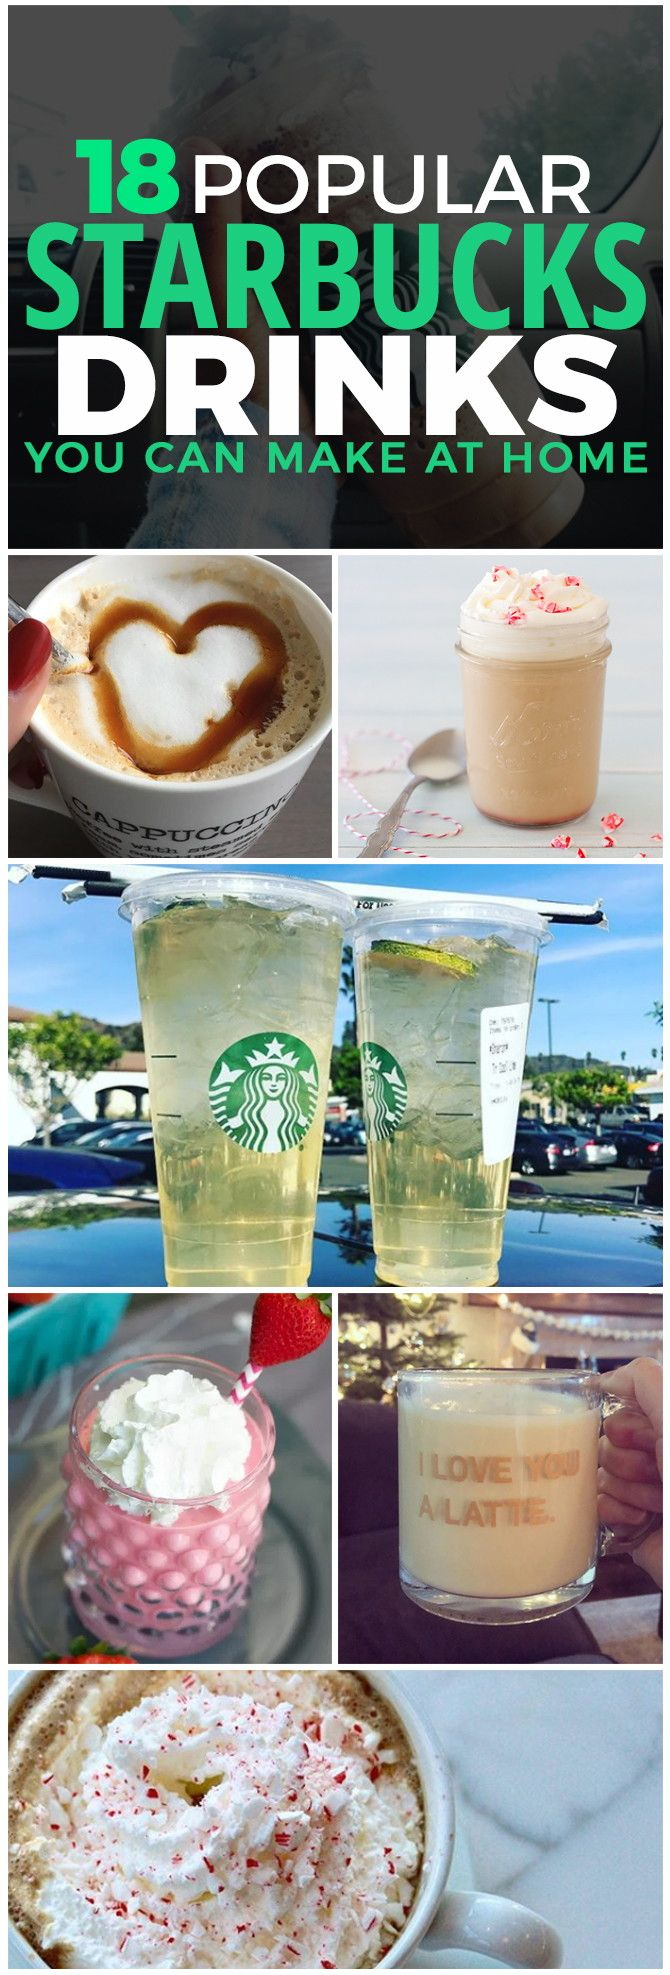 Starbucks Coffee At Home That You Can Make